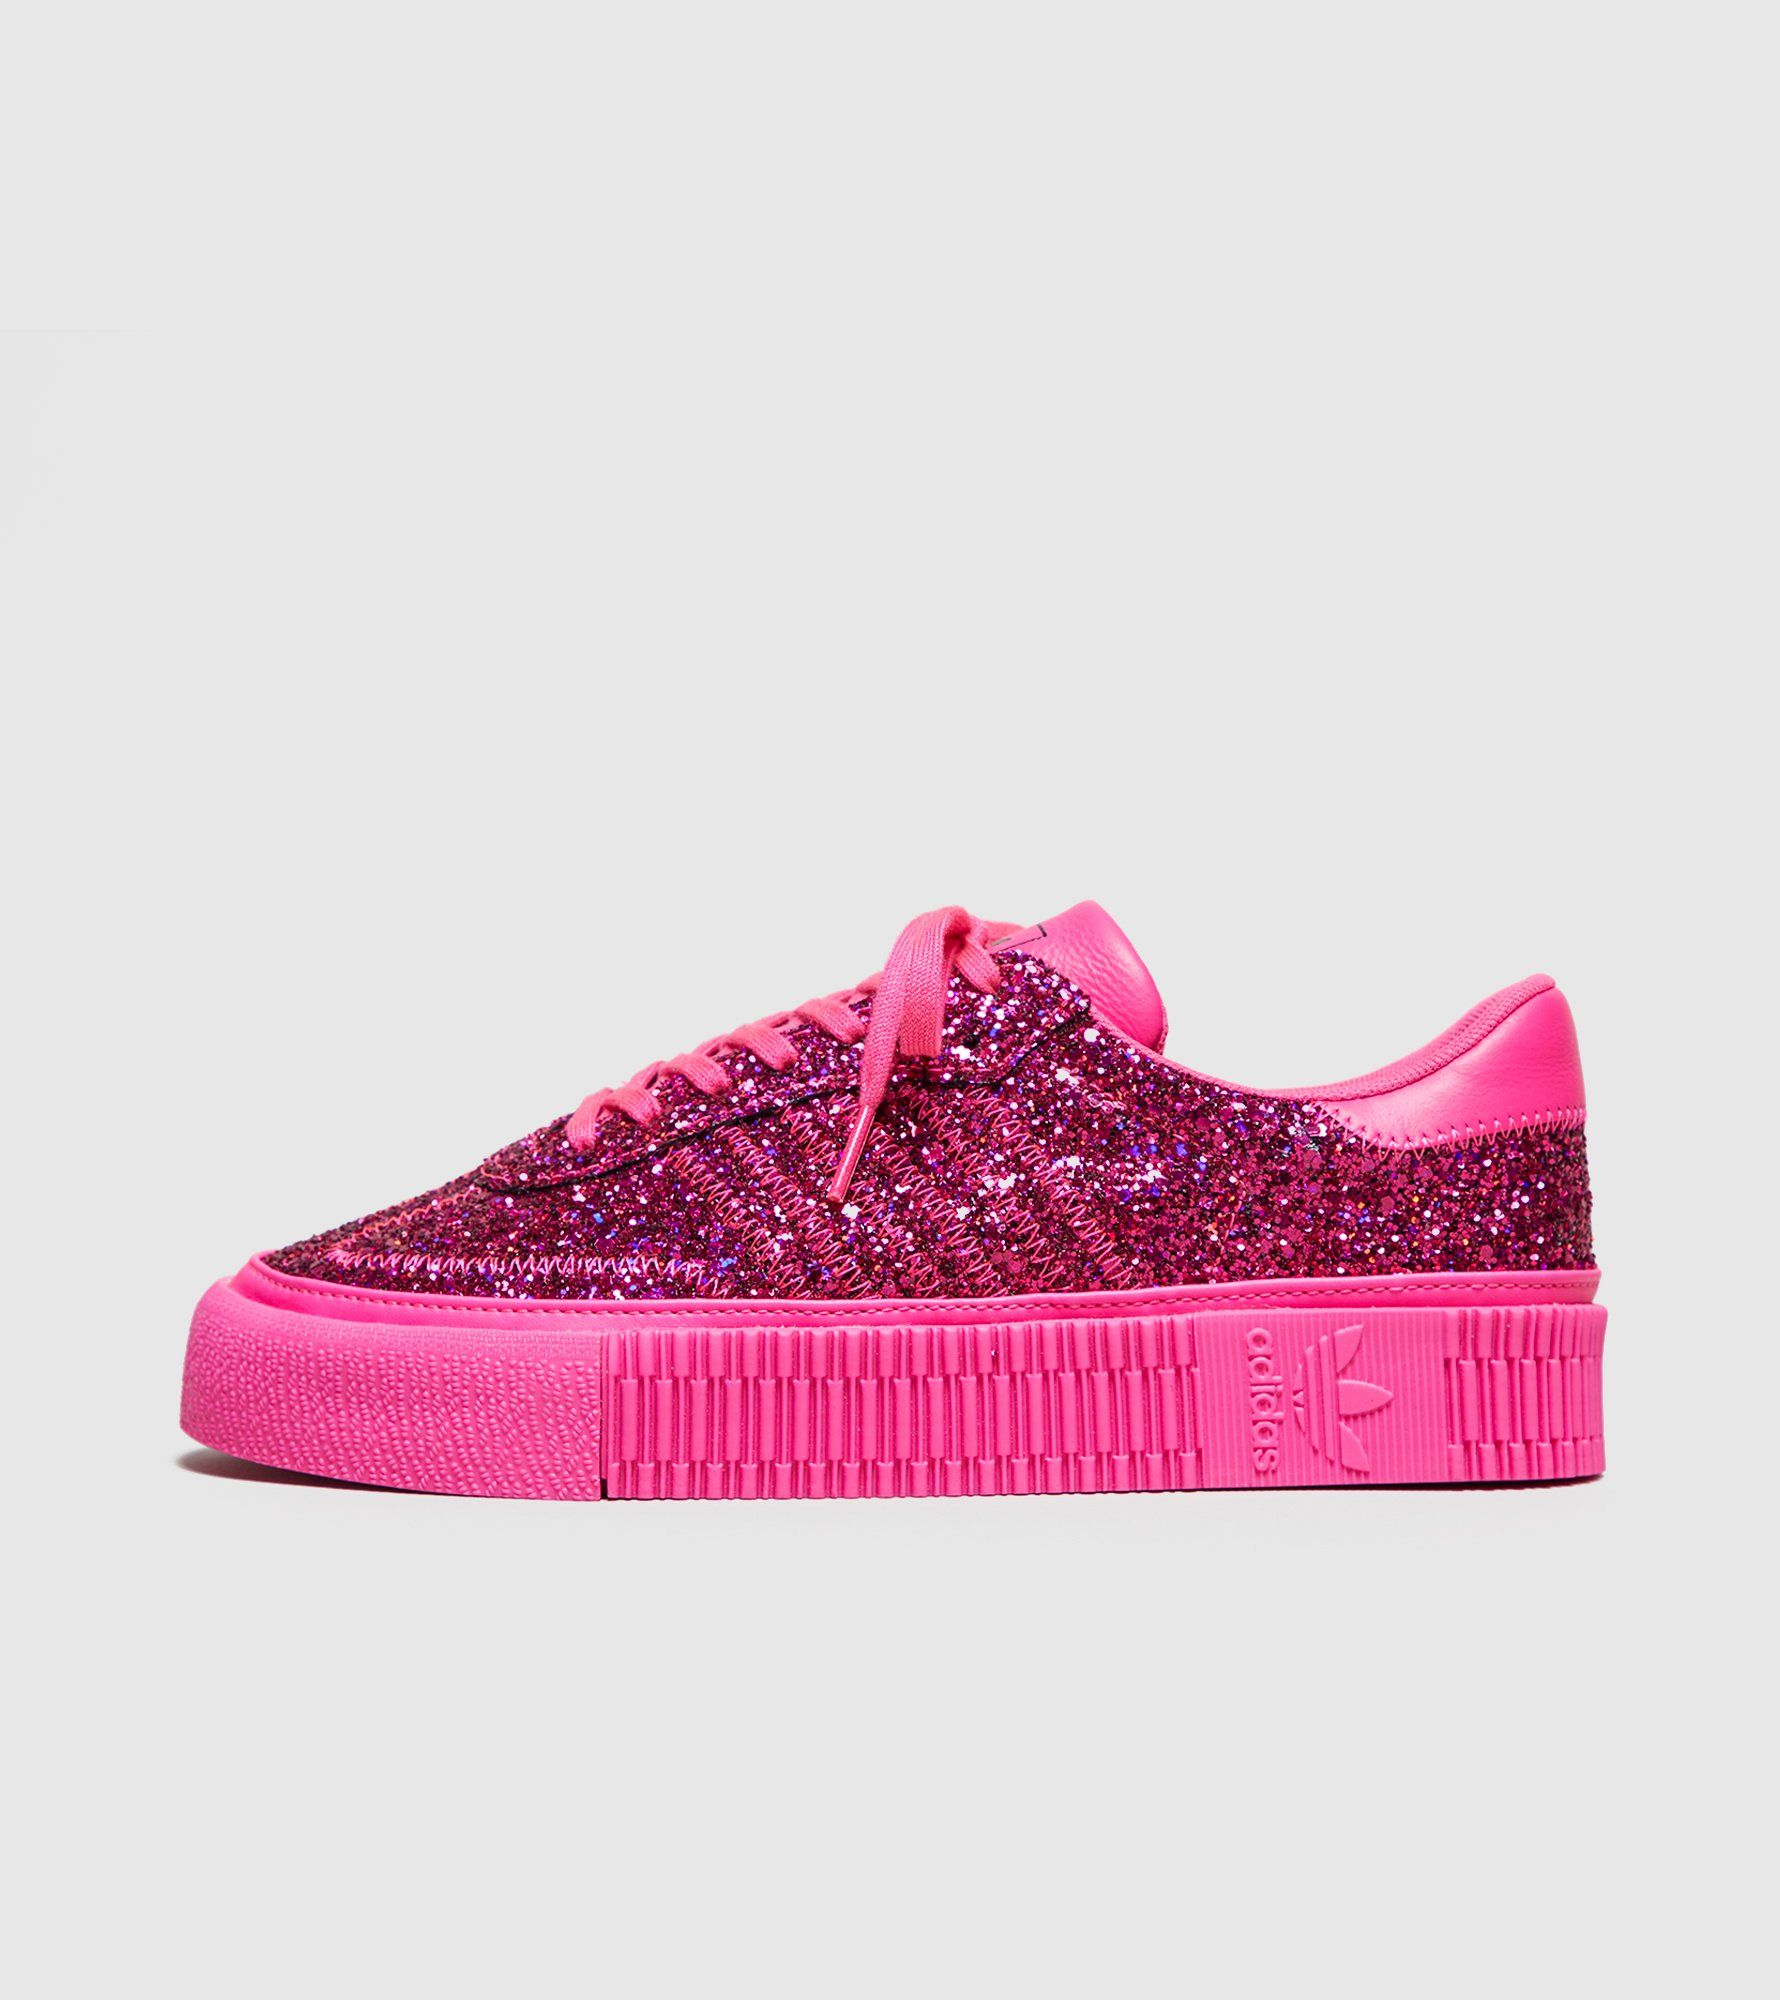 adidas Originals Samba Rose Women's